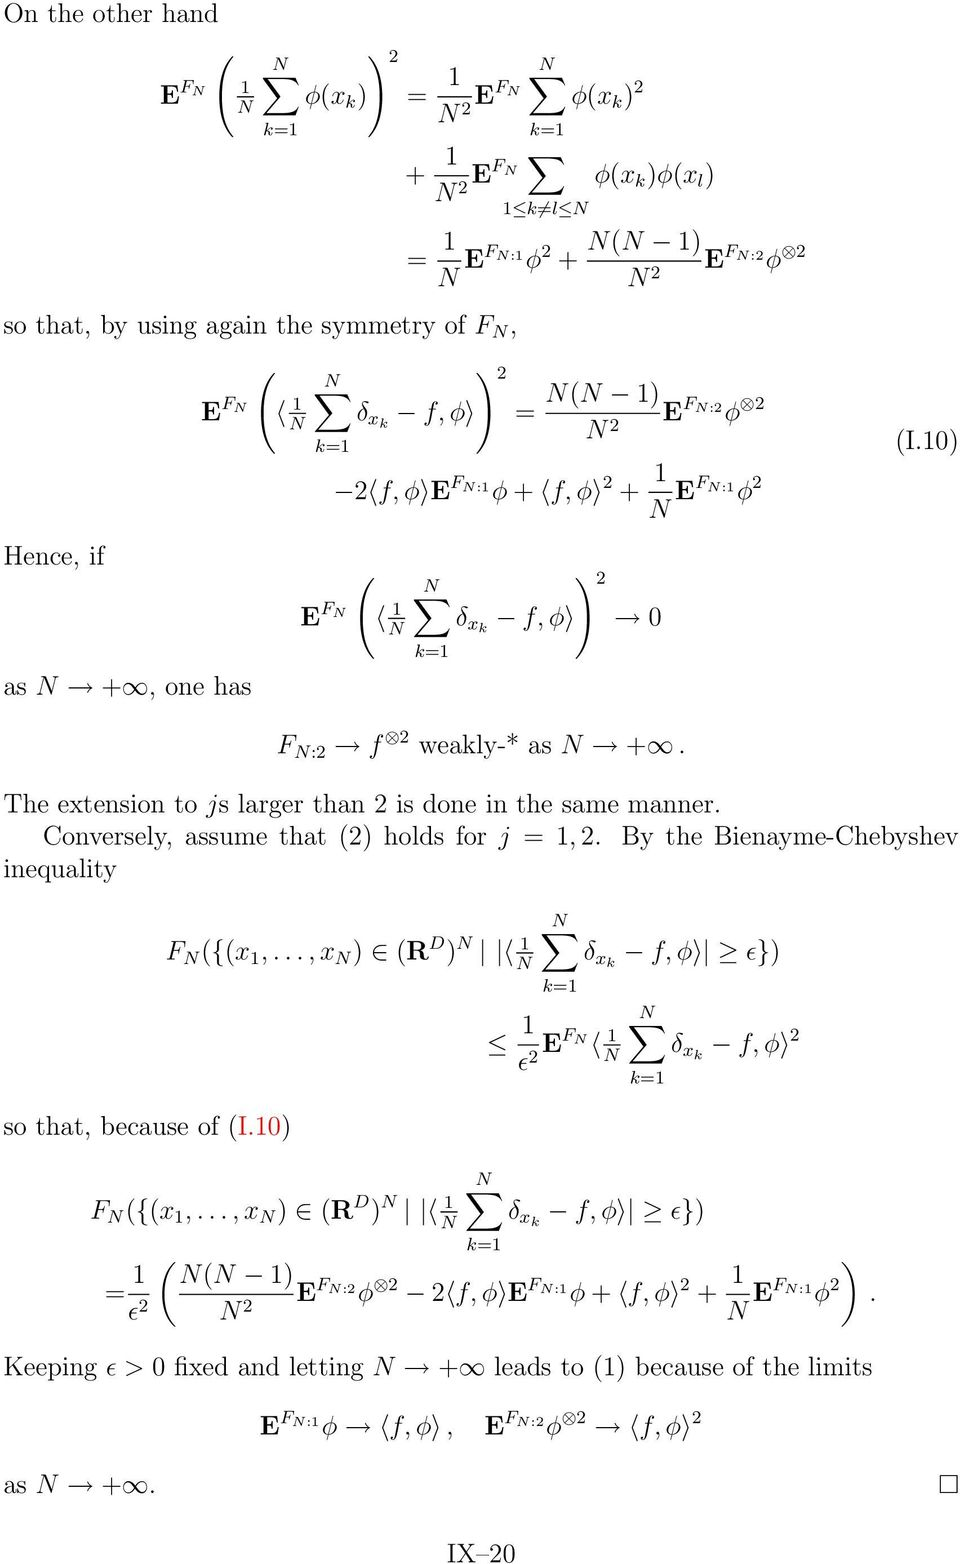 Conversely, assume that (2) holds for j =1, 2. By the Bienayme-Chebyshev inequality so that, because of (I.1) F ({(x 1,...,x ) (R D ) 1 F ({(x 1,.